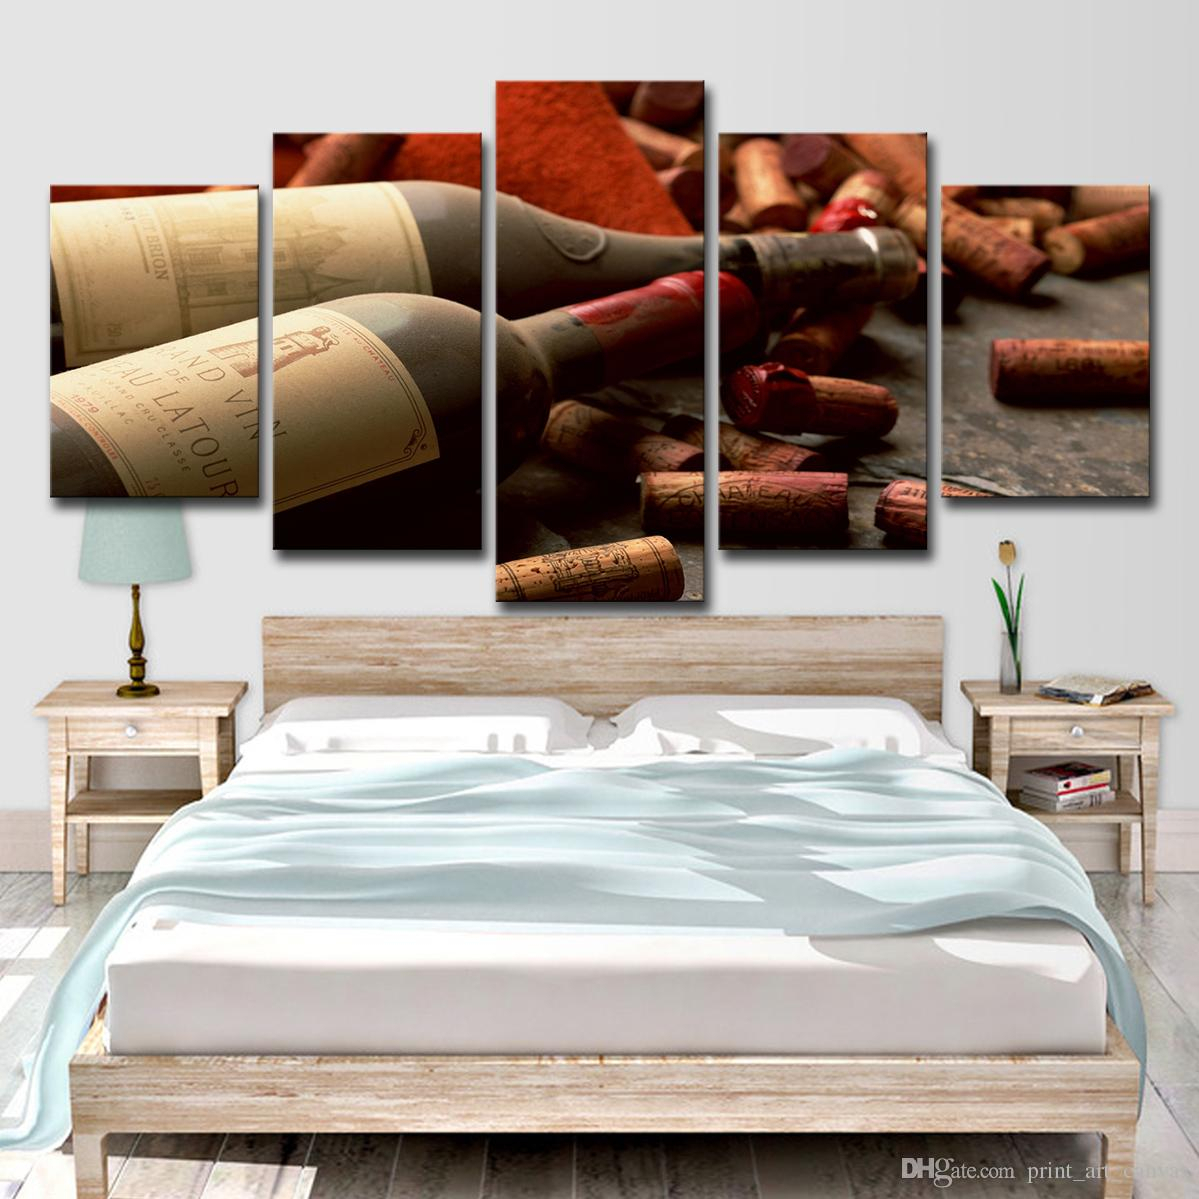 Latest 2019 Home Decor Hd Prints Pictures Kitchen Canvas Wall Art Poster Regarding Latour Wall Decor (View 17 of 20)